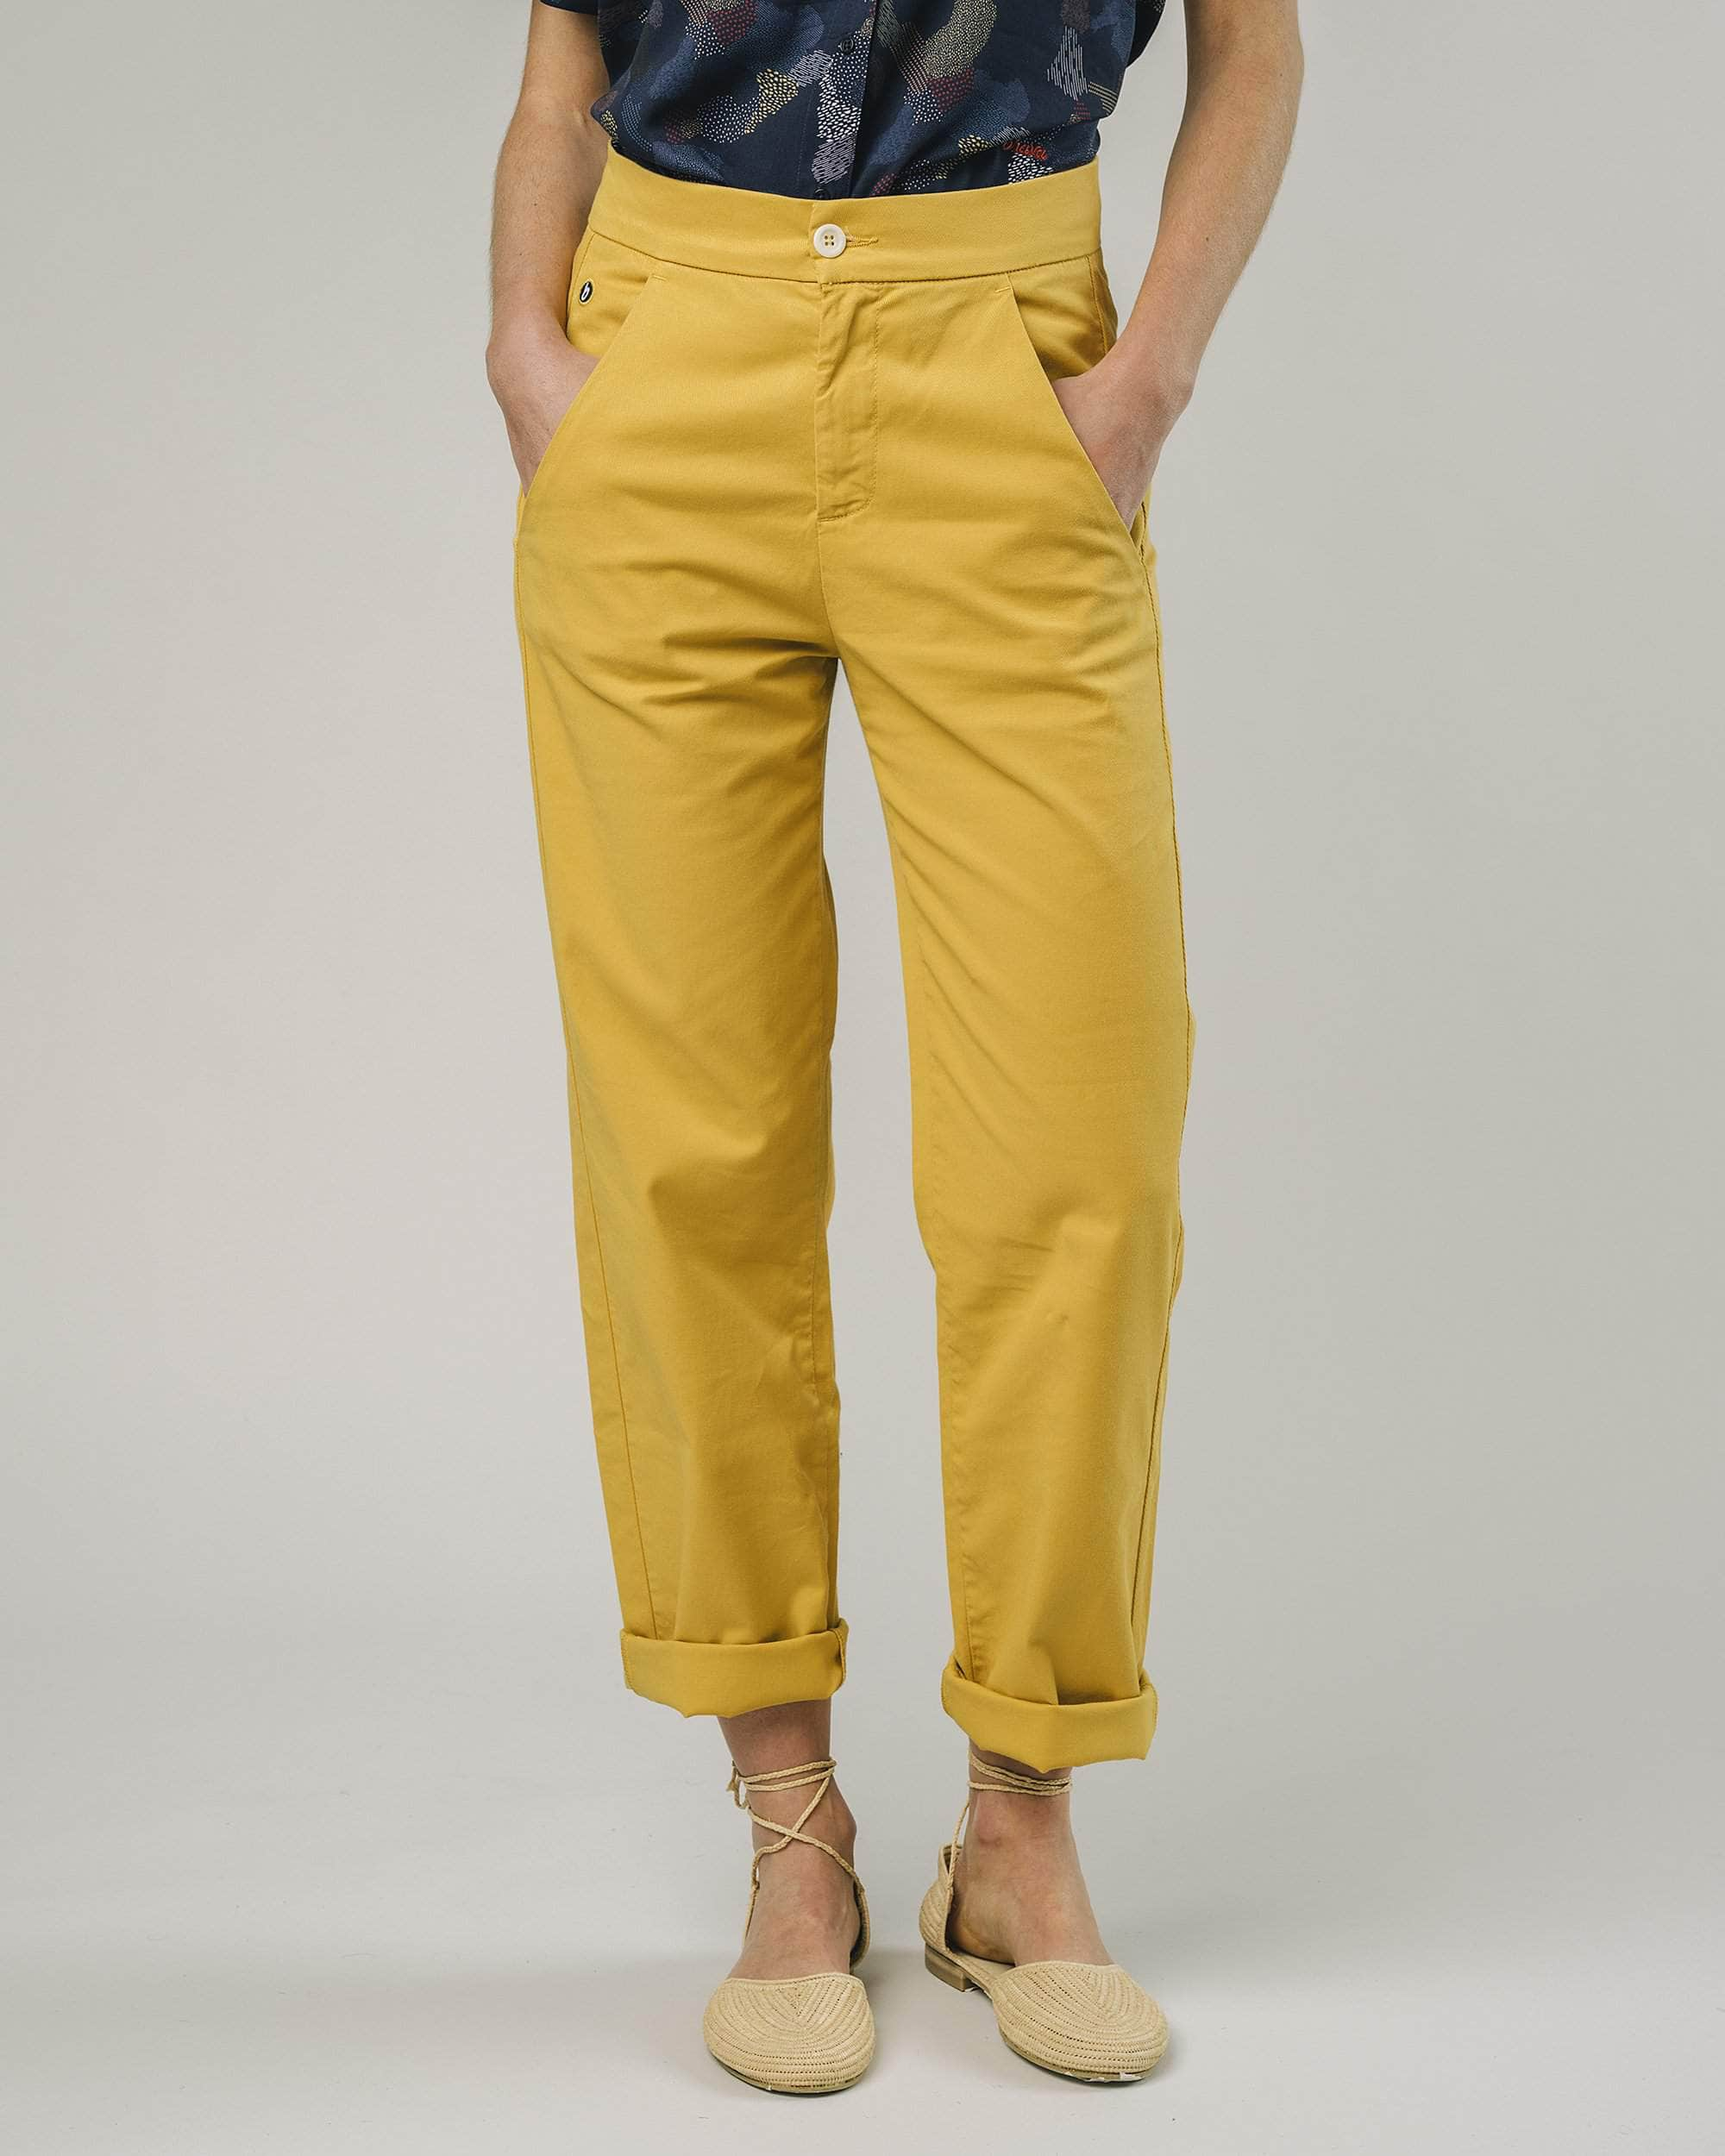 Narciso Chino Pants